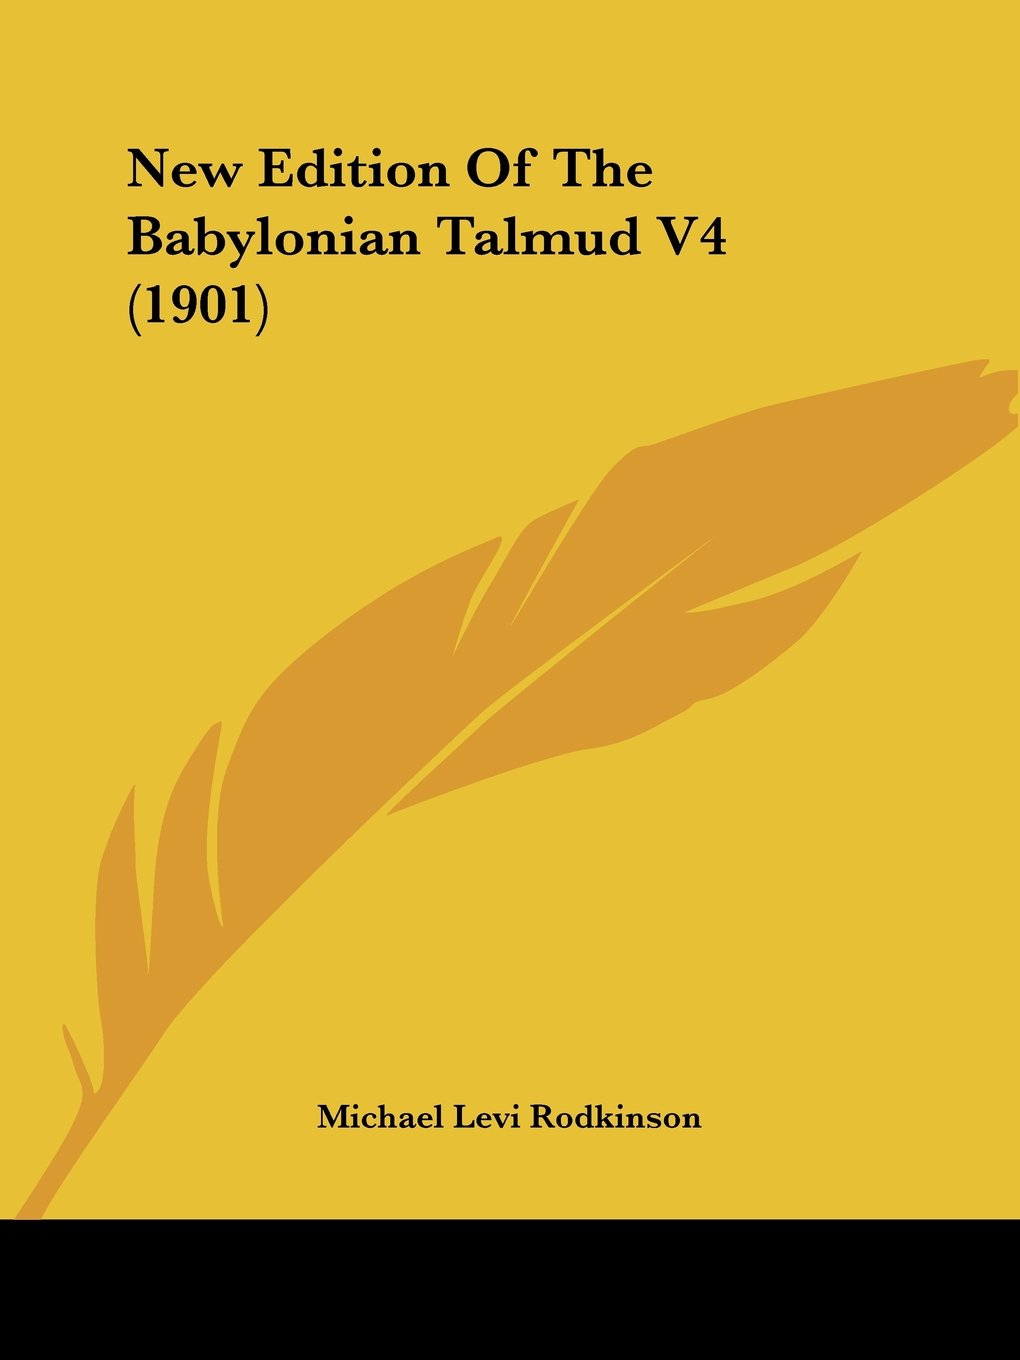 Download New Edition Of The Babylonian Talmud V4 (1901) ebook